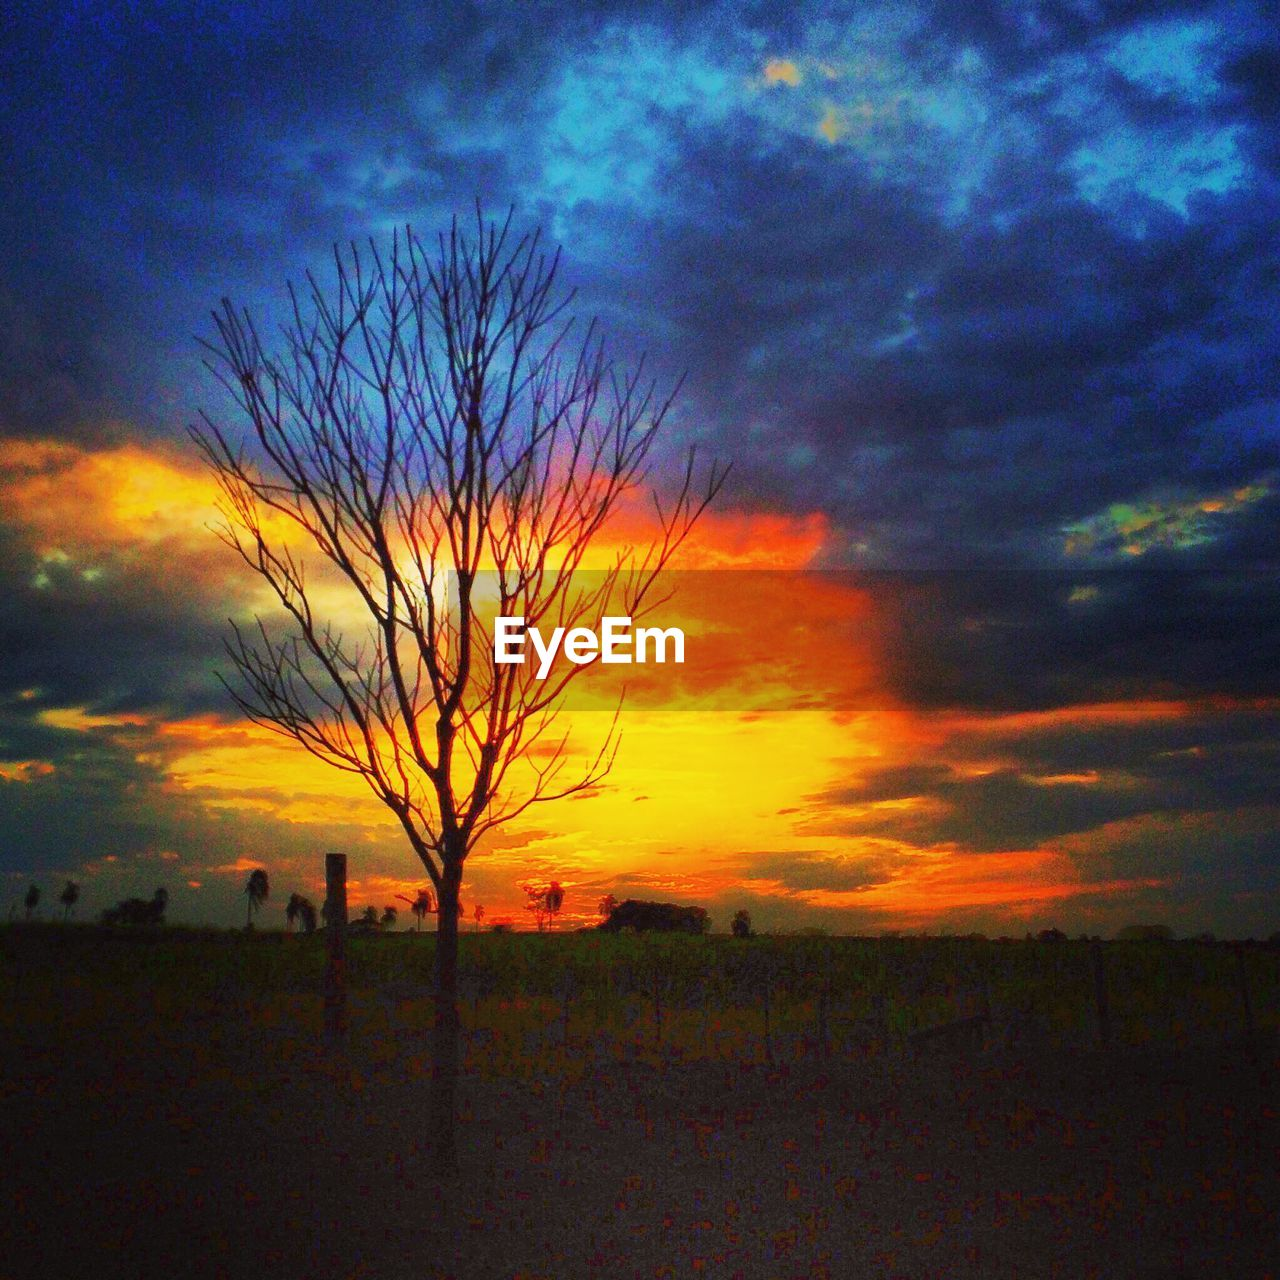 sunset, landscape, sky, nature, field, silhouette, lone, beauty in nature, tree, horizon over land, tranquility, scenics, bare tree, outdoors, no people